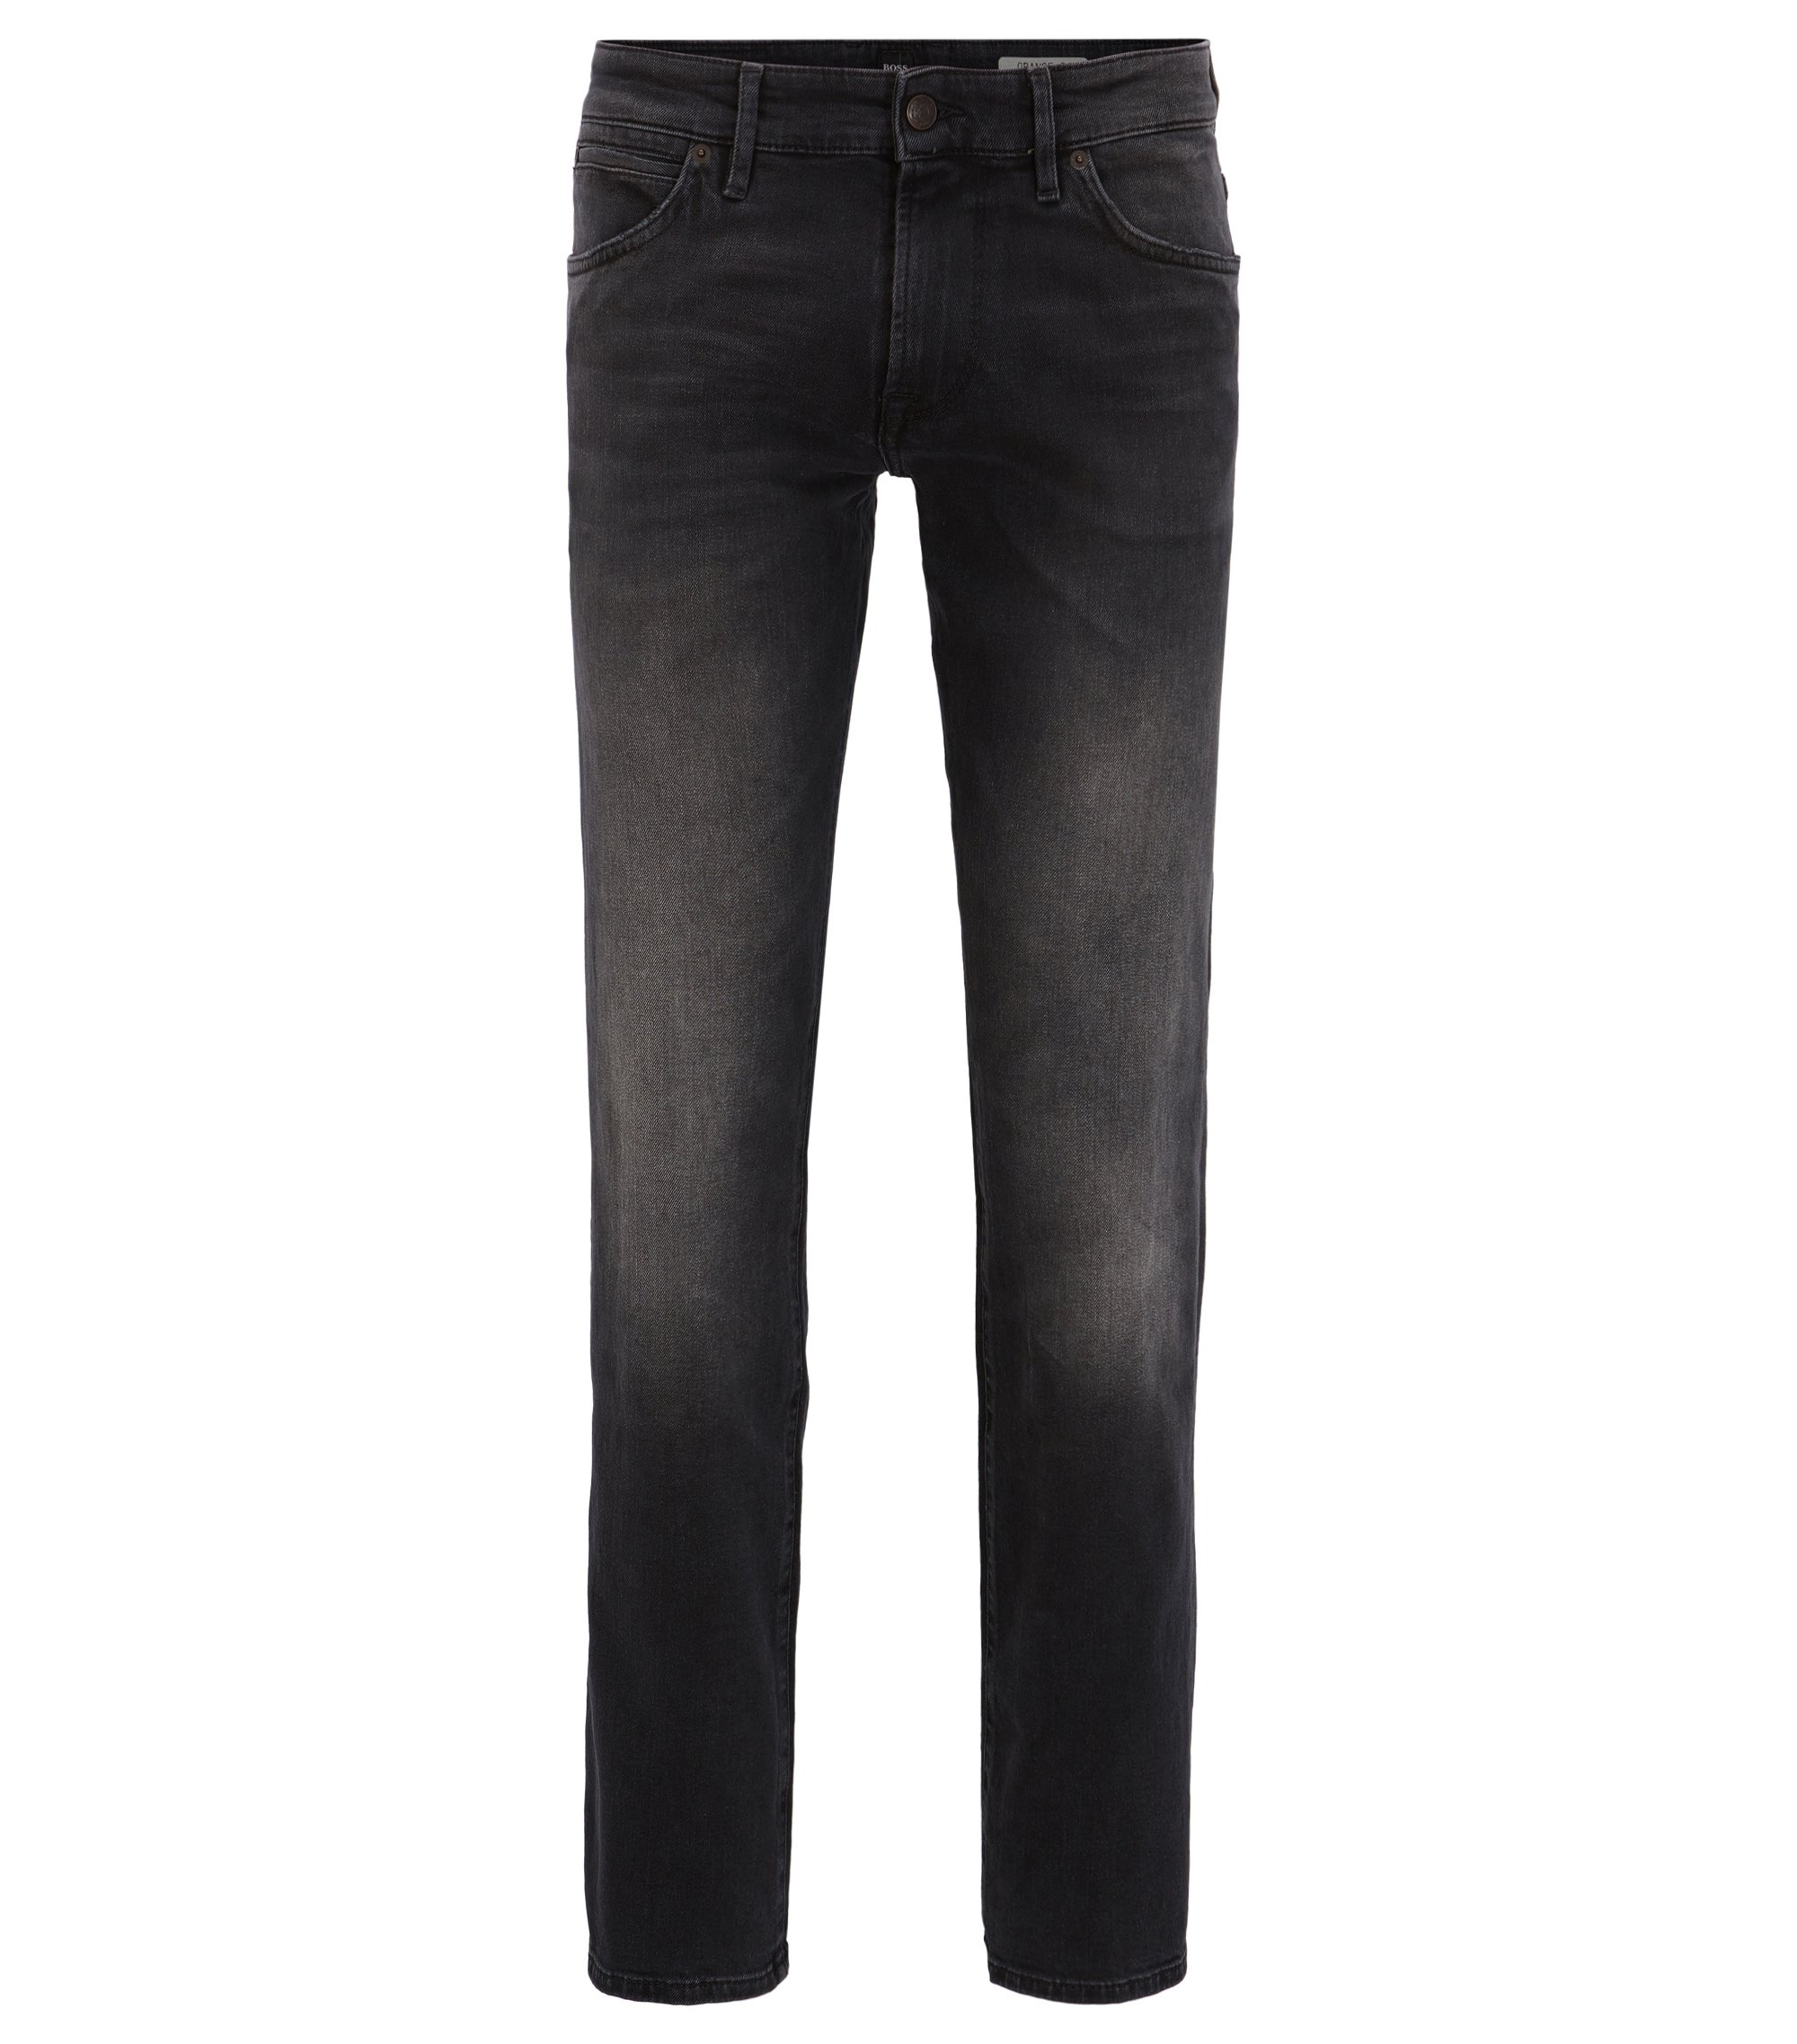 Jean Regular Fit en confortable denim stretch noir, Anthracite